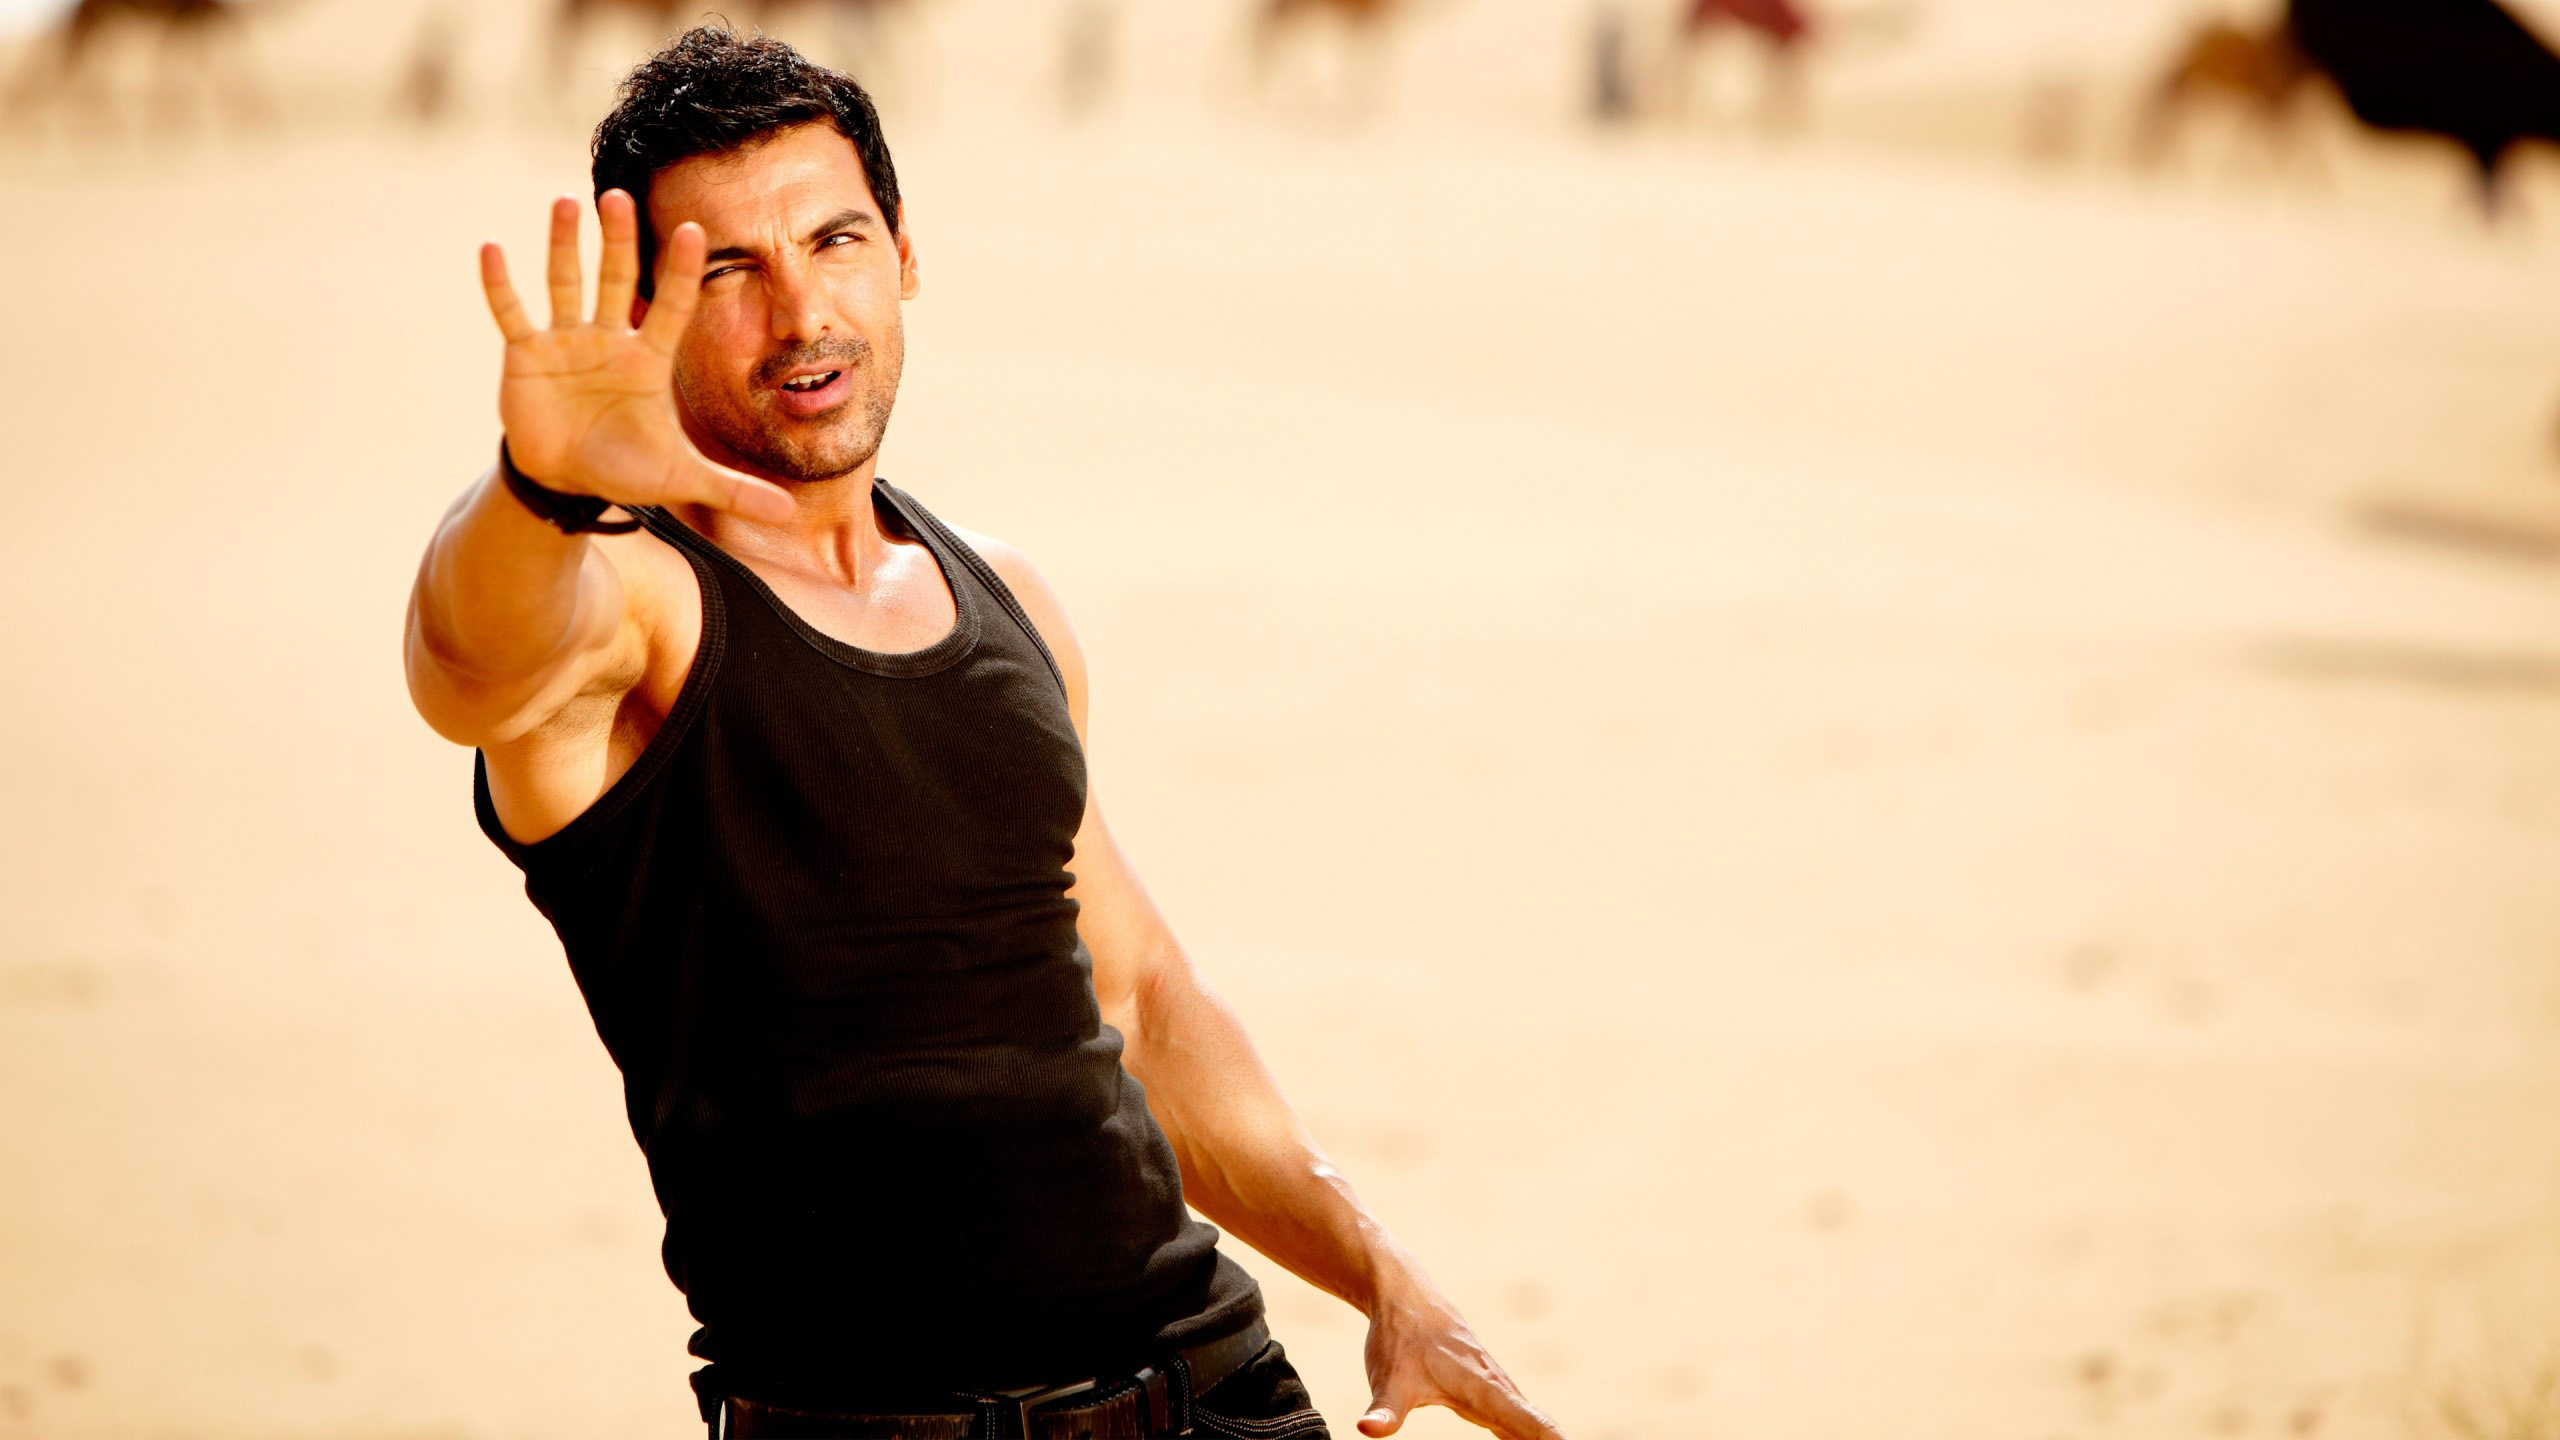 bollywood actor john abraham wallpaper 2k quad hd id2074